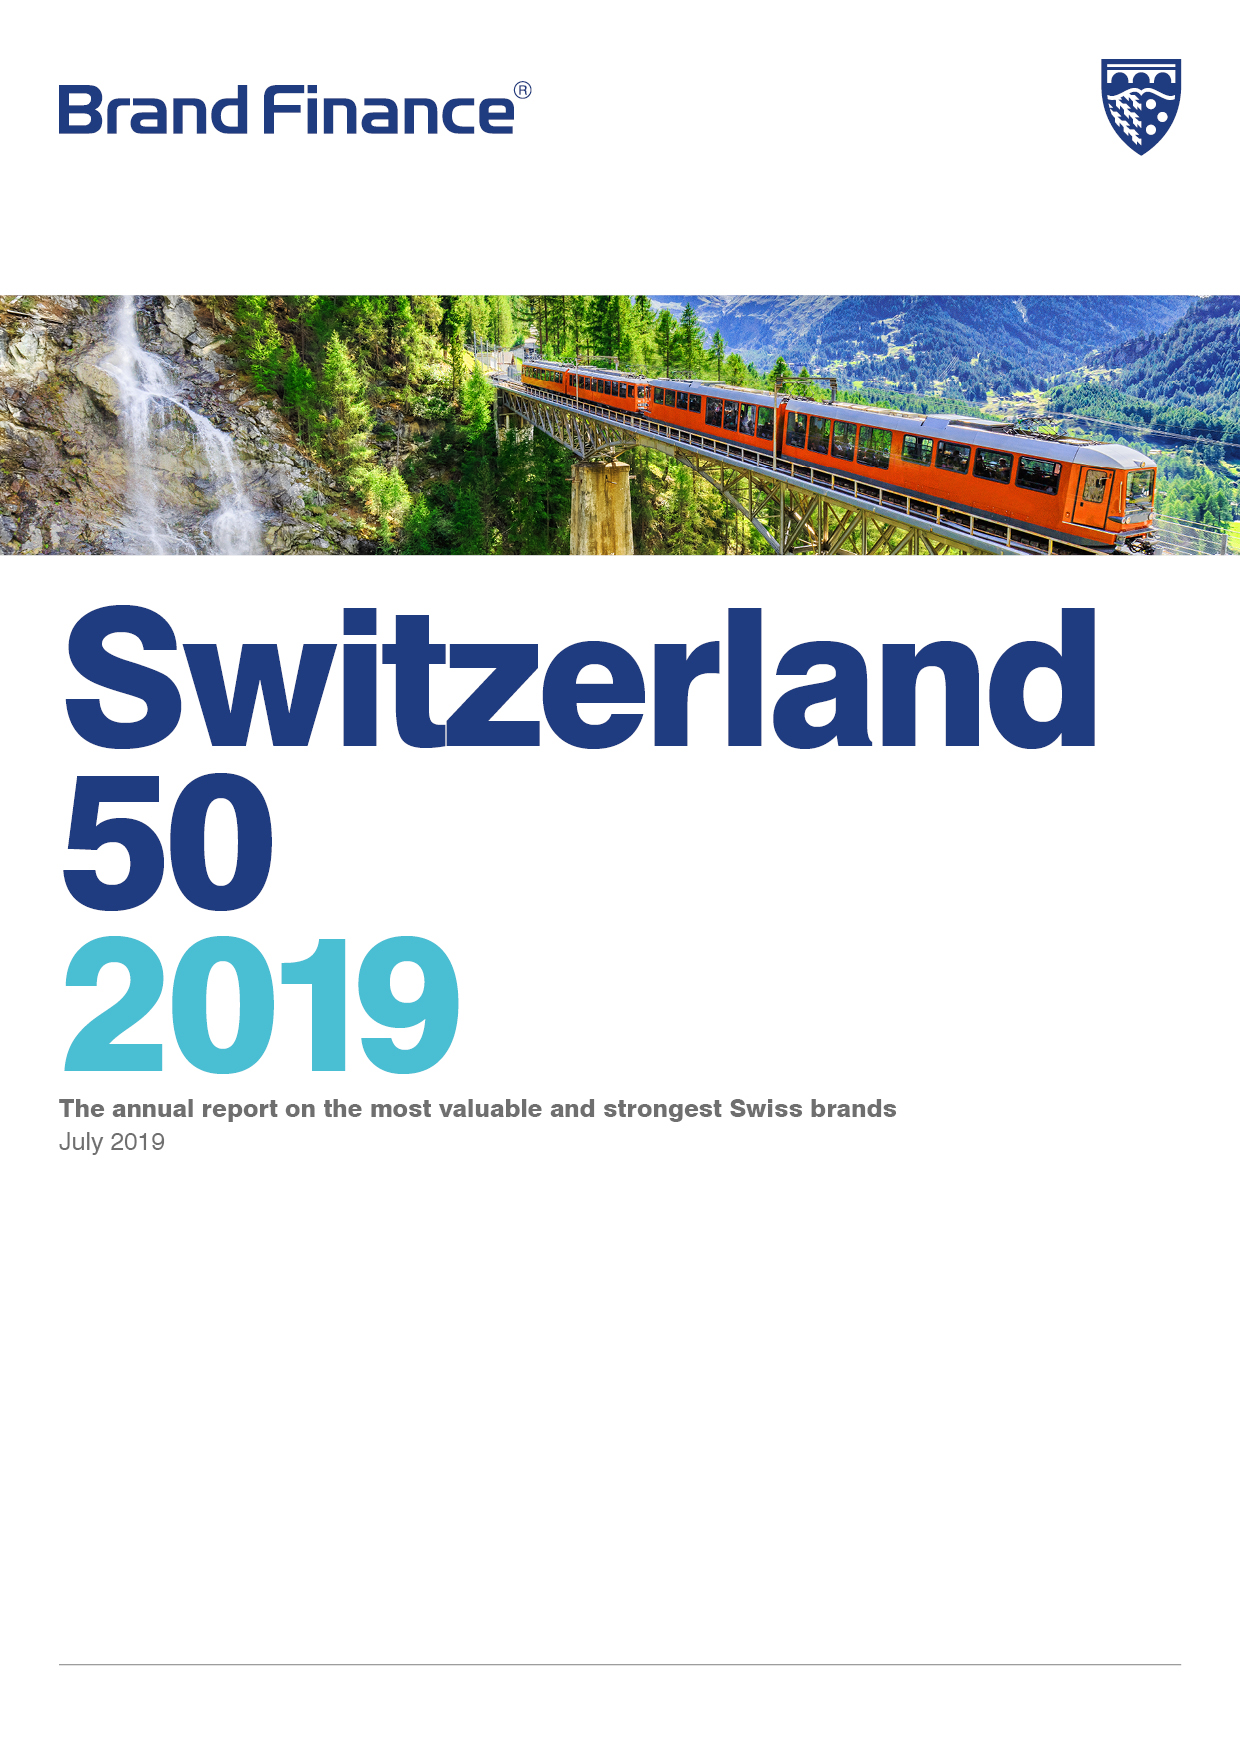 Brand Finance Switzerland 50 2019